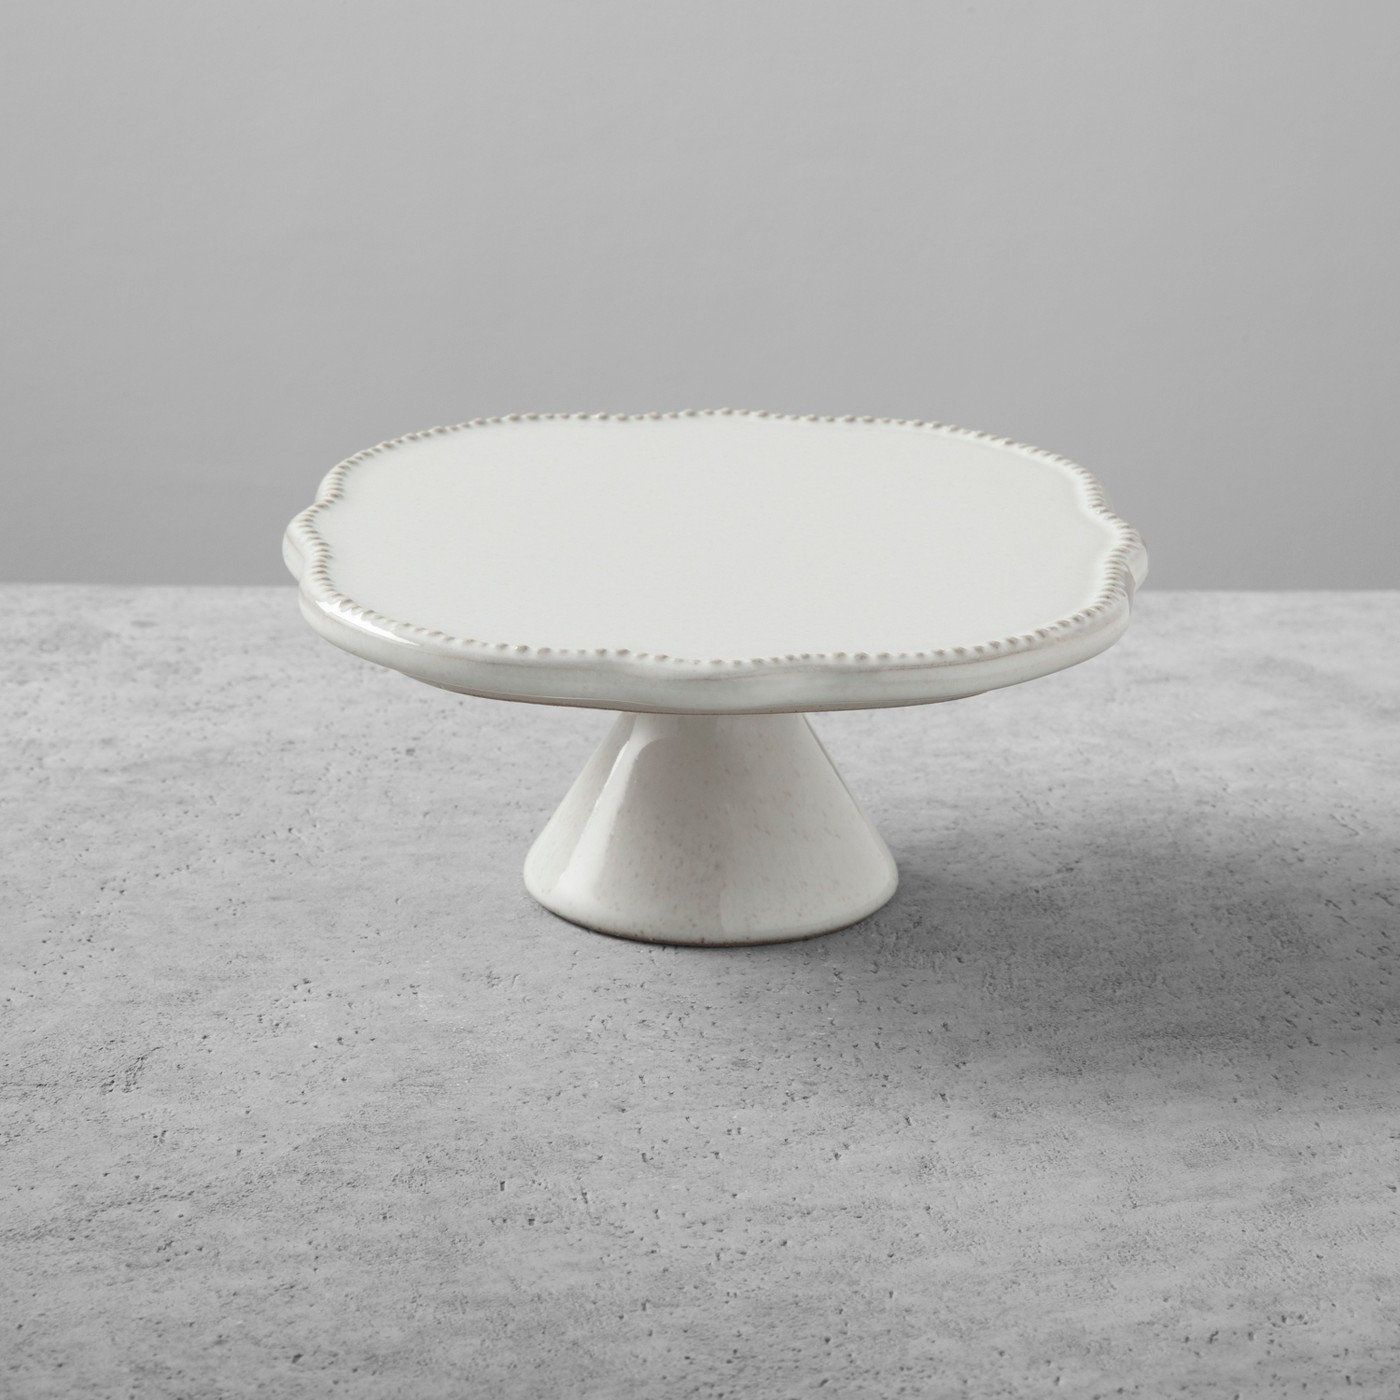 Stoneware Cake Stand Small Cream - Hearth & Hand™ with Magnolia - image 1 of 2